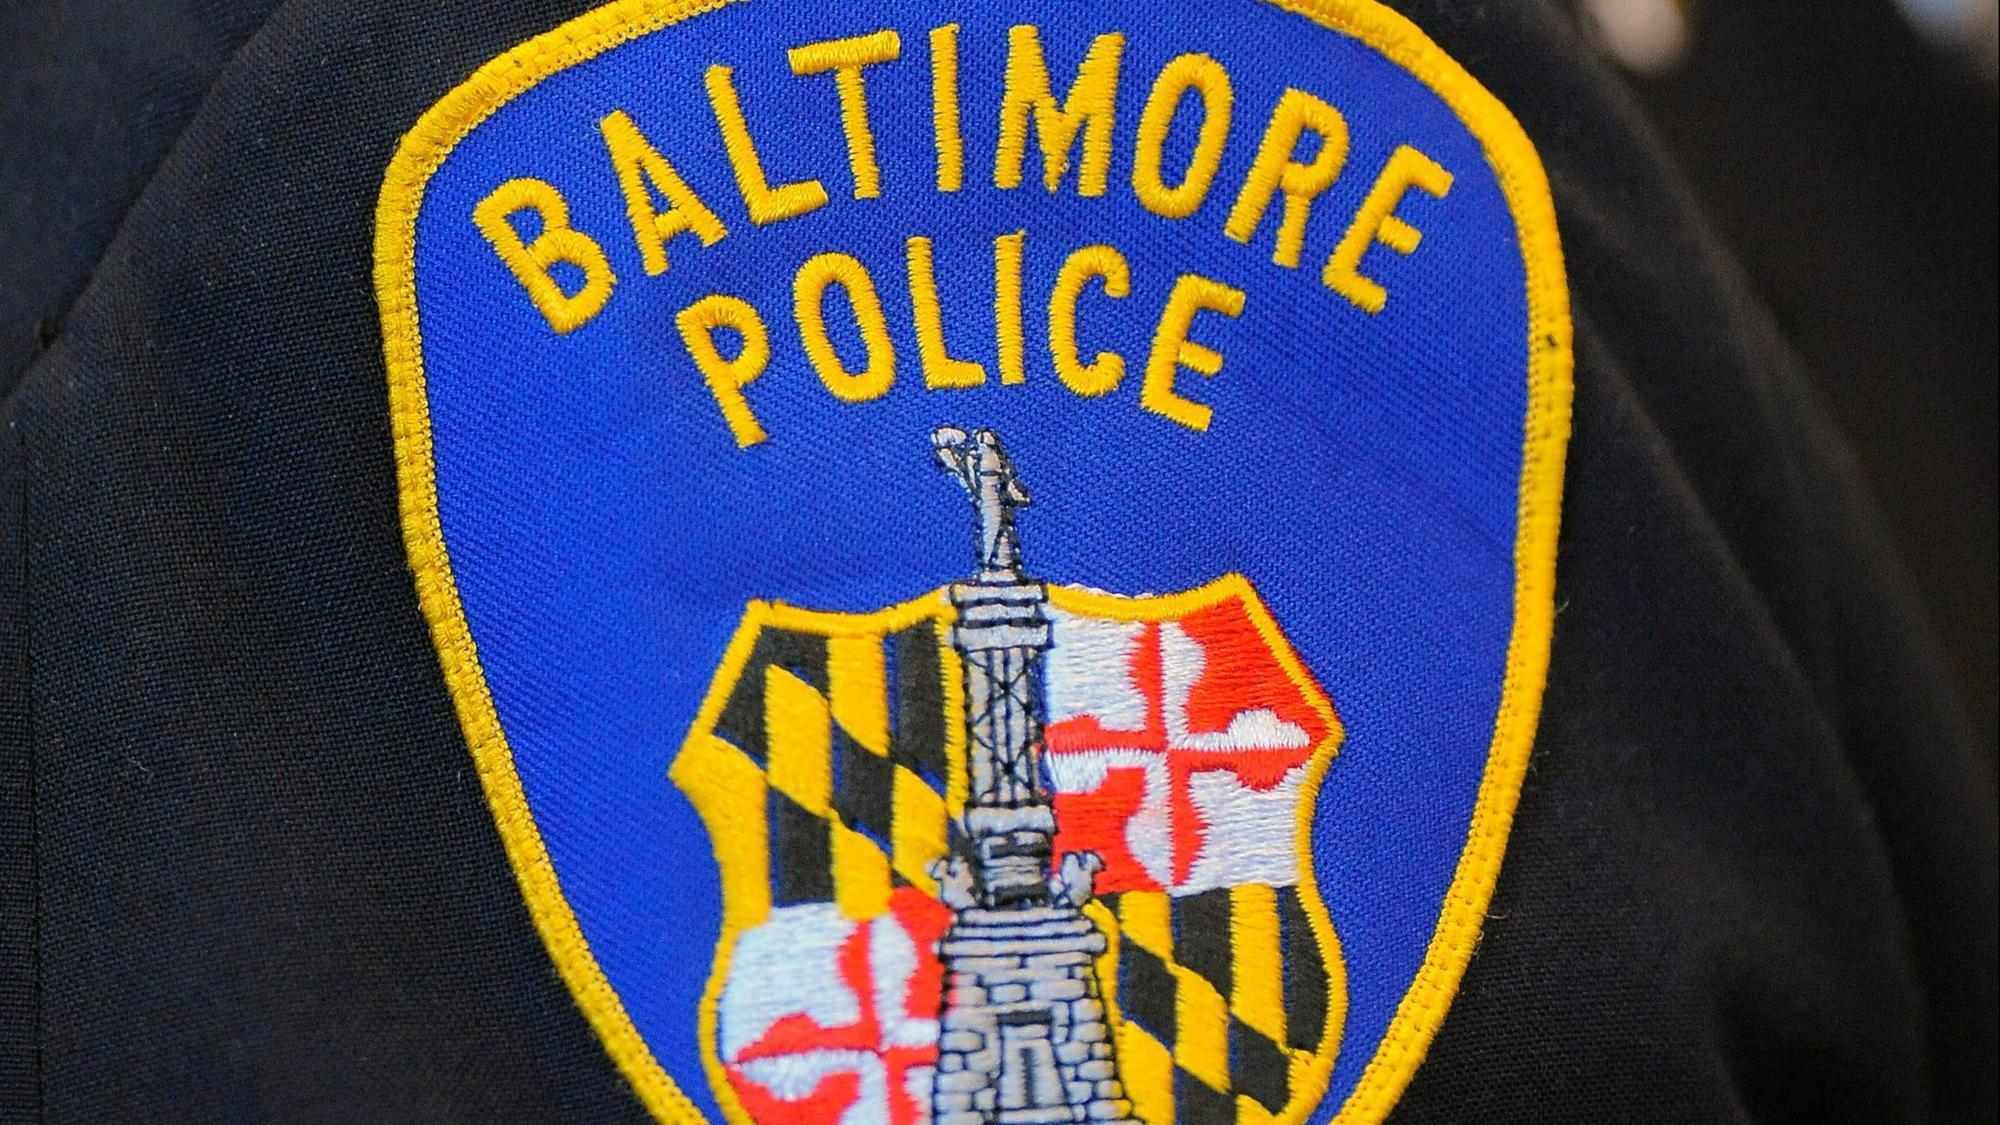 Witness says Baltimore Gun Trace Task Force officer brought him trash bags full of looted pharmaceutical drugs amid 2015 riot